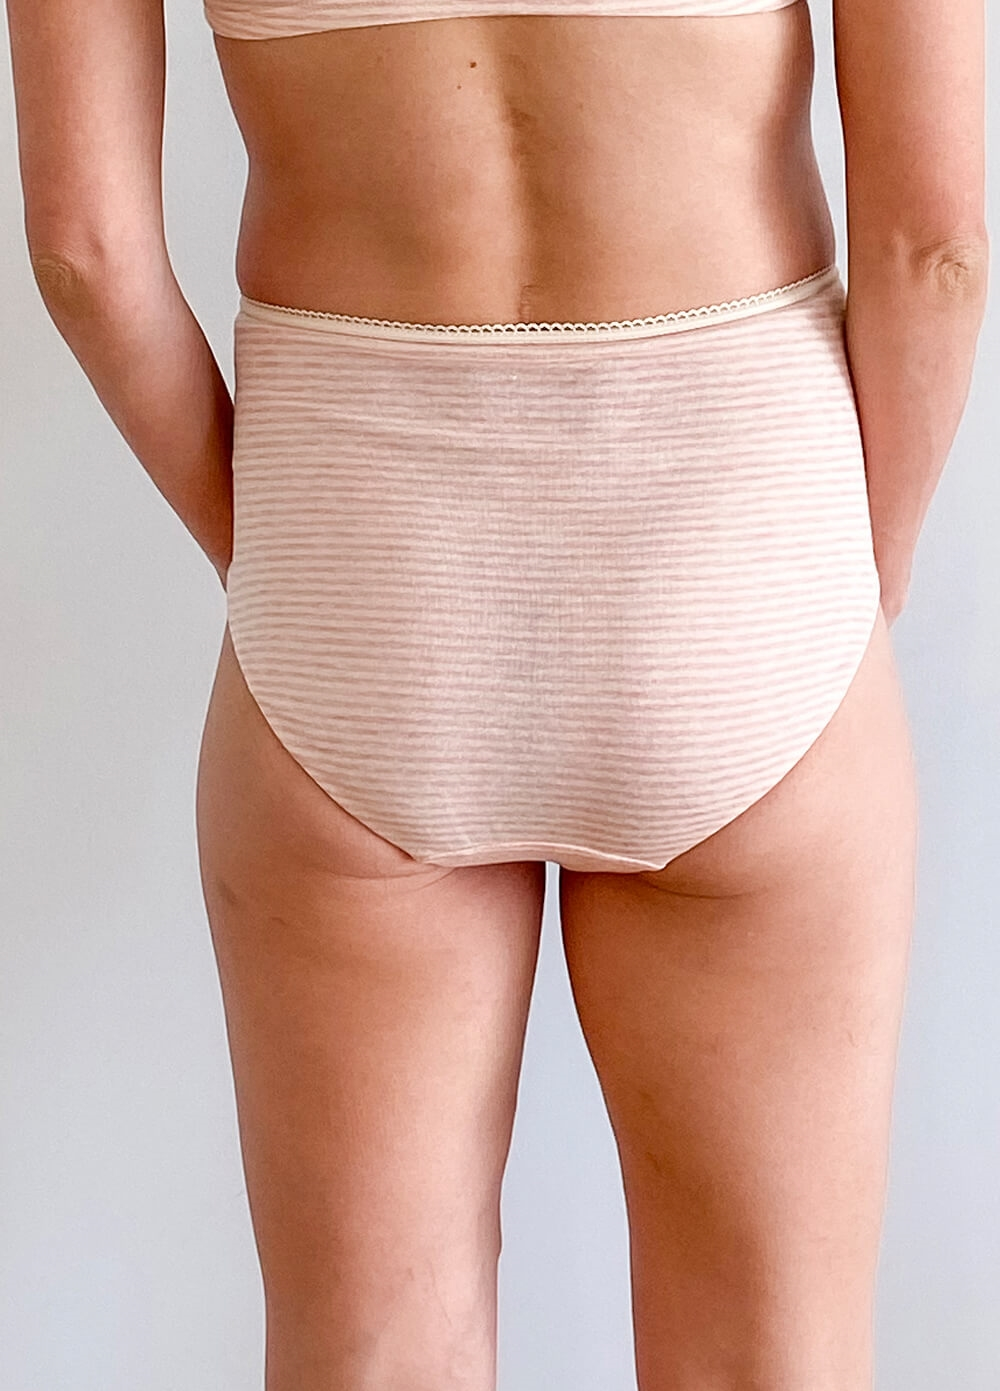 QueenBee® - Evelina 3-pack Maternity Briefs in Pink Stripes